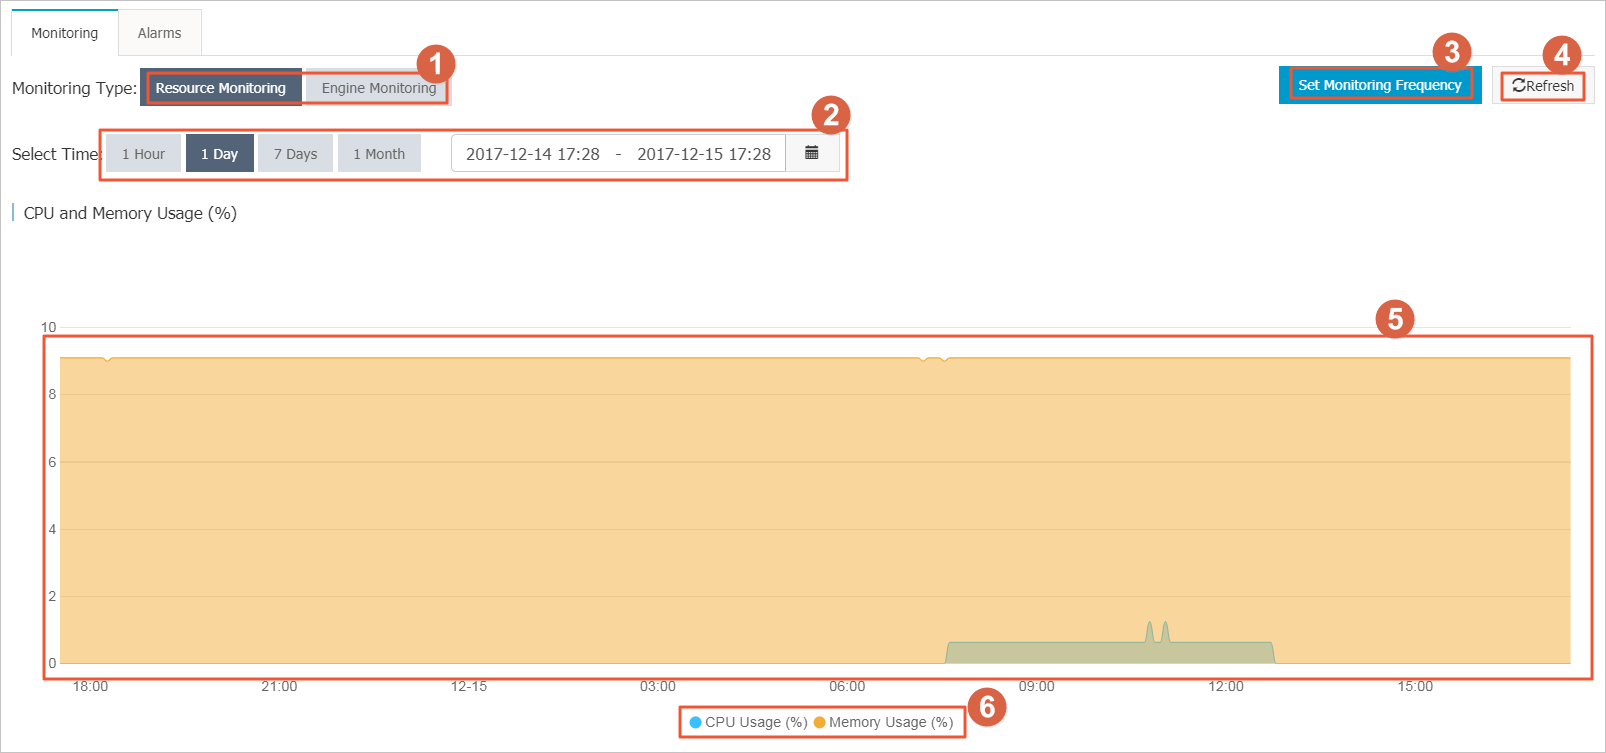 Operations on the monitoring page